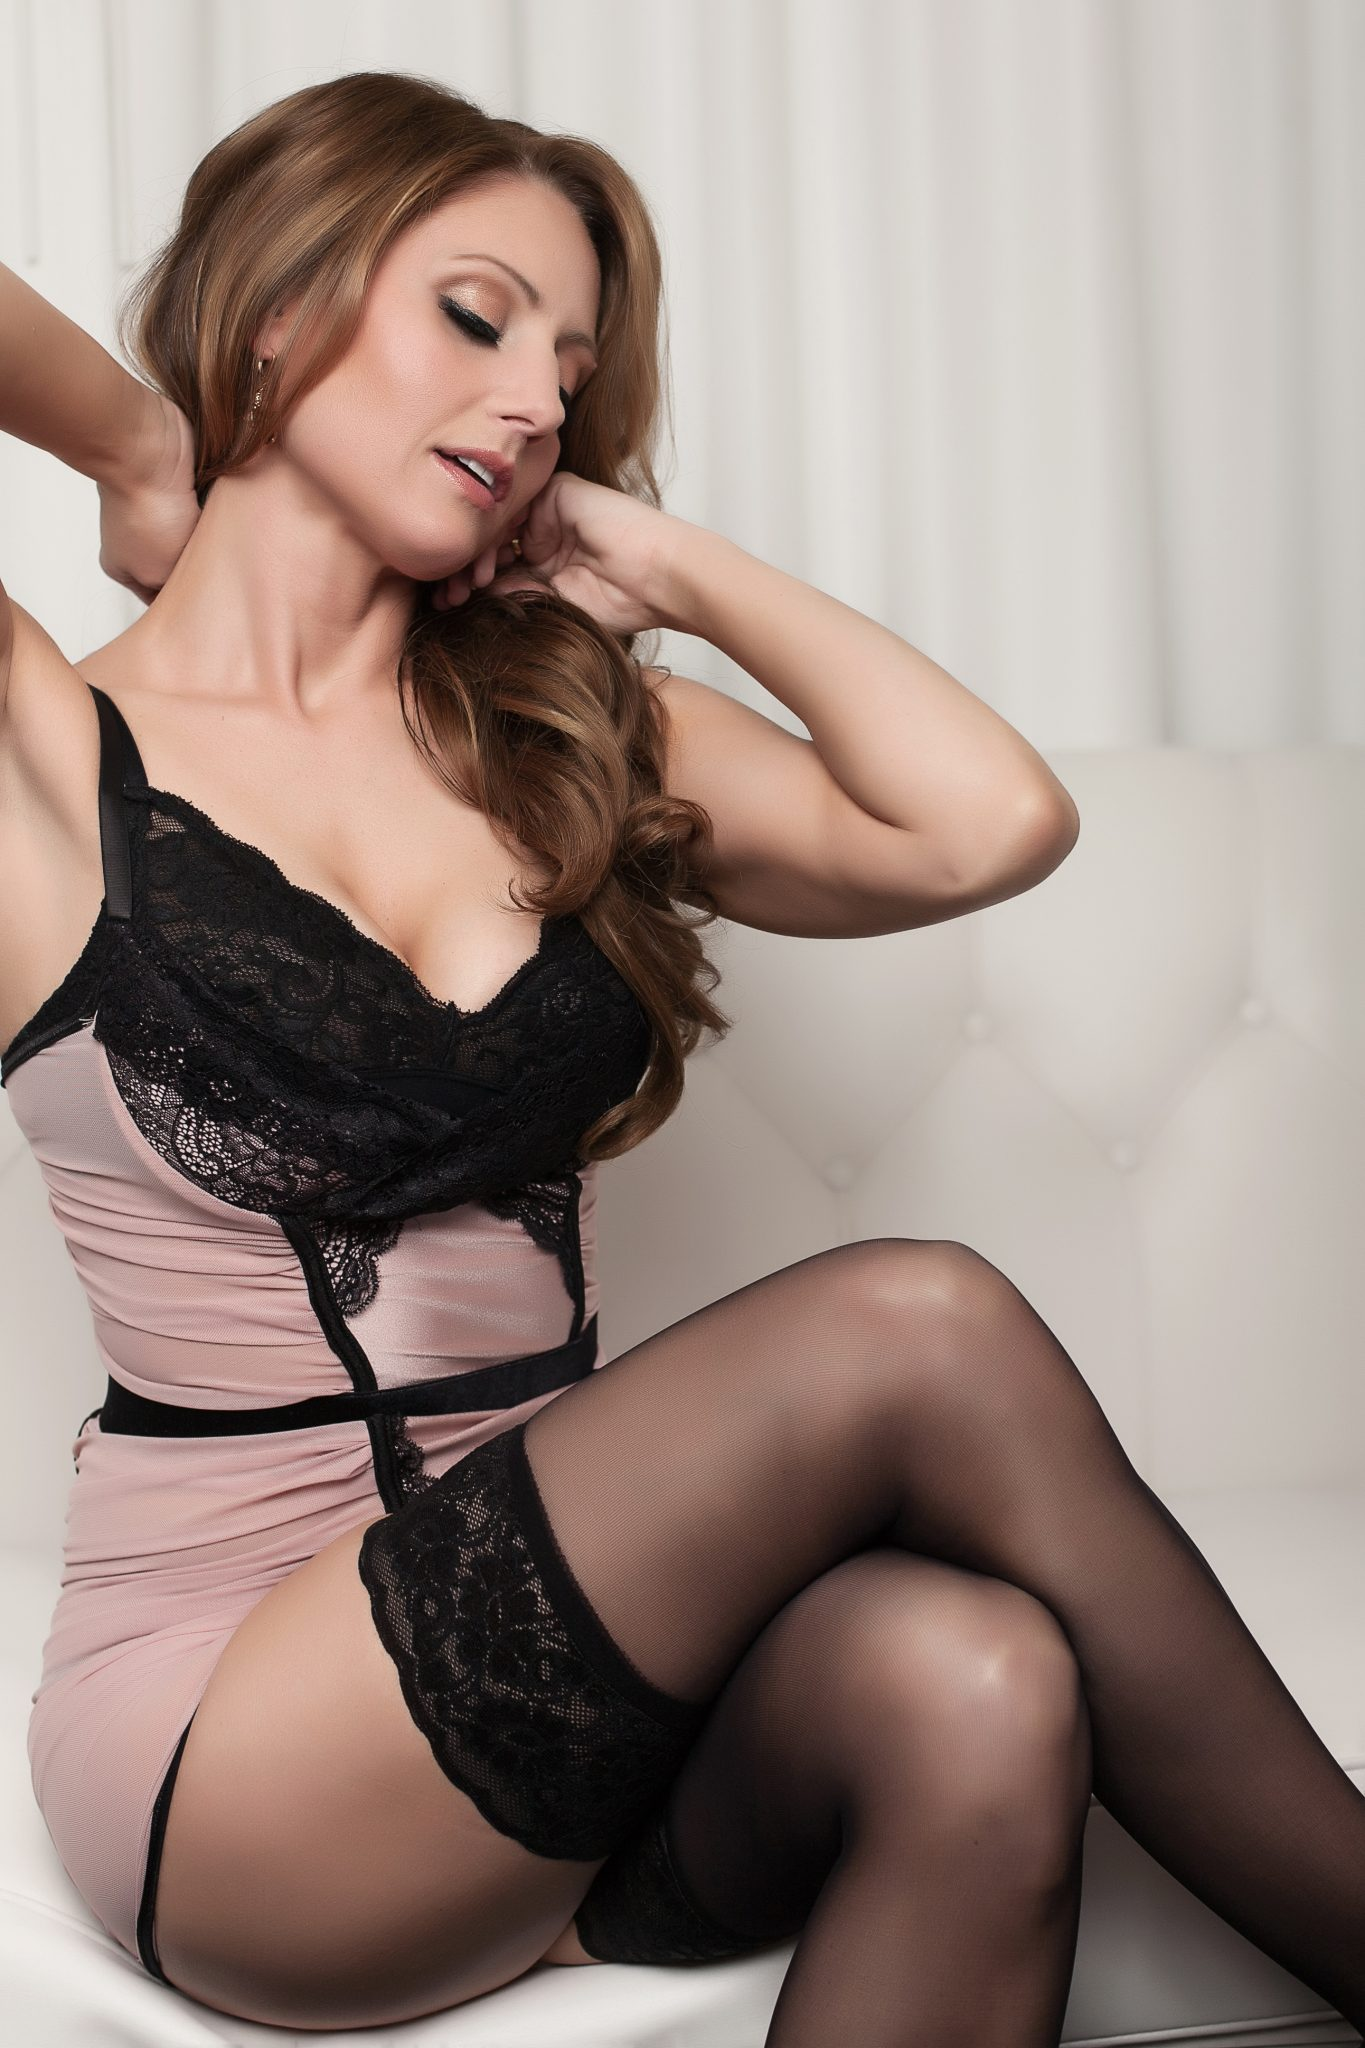 Pretty lingerie and a look of longing. Perfect for a boudoir photography shoot.